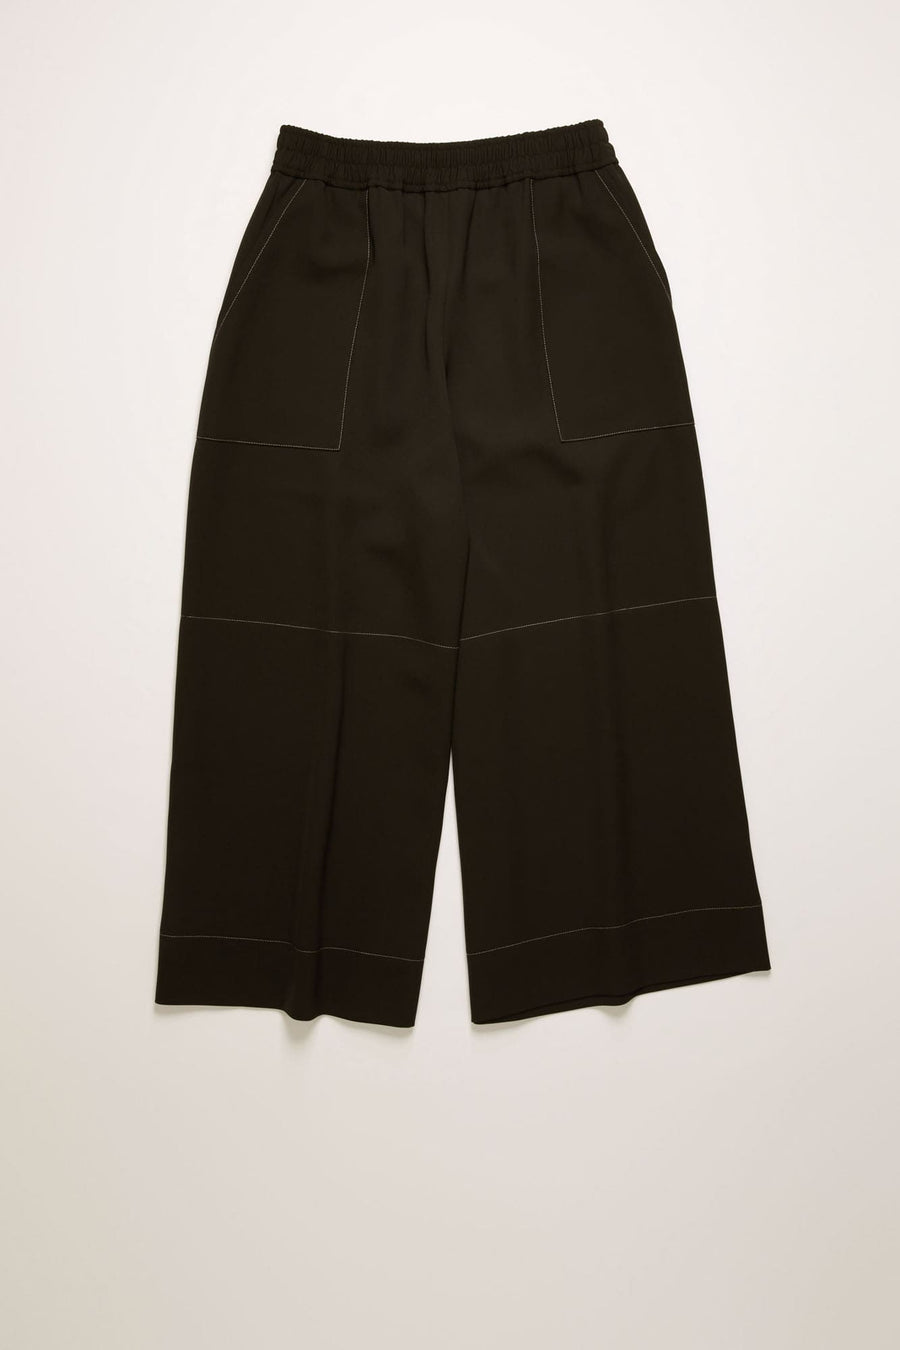 Parisa Trousers-black